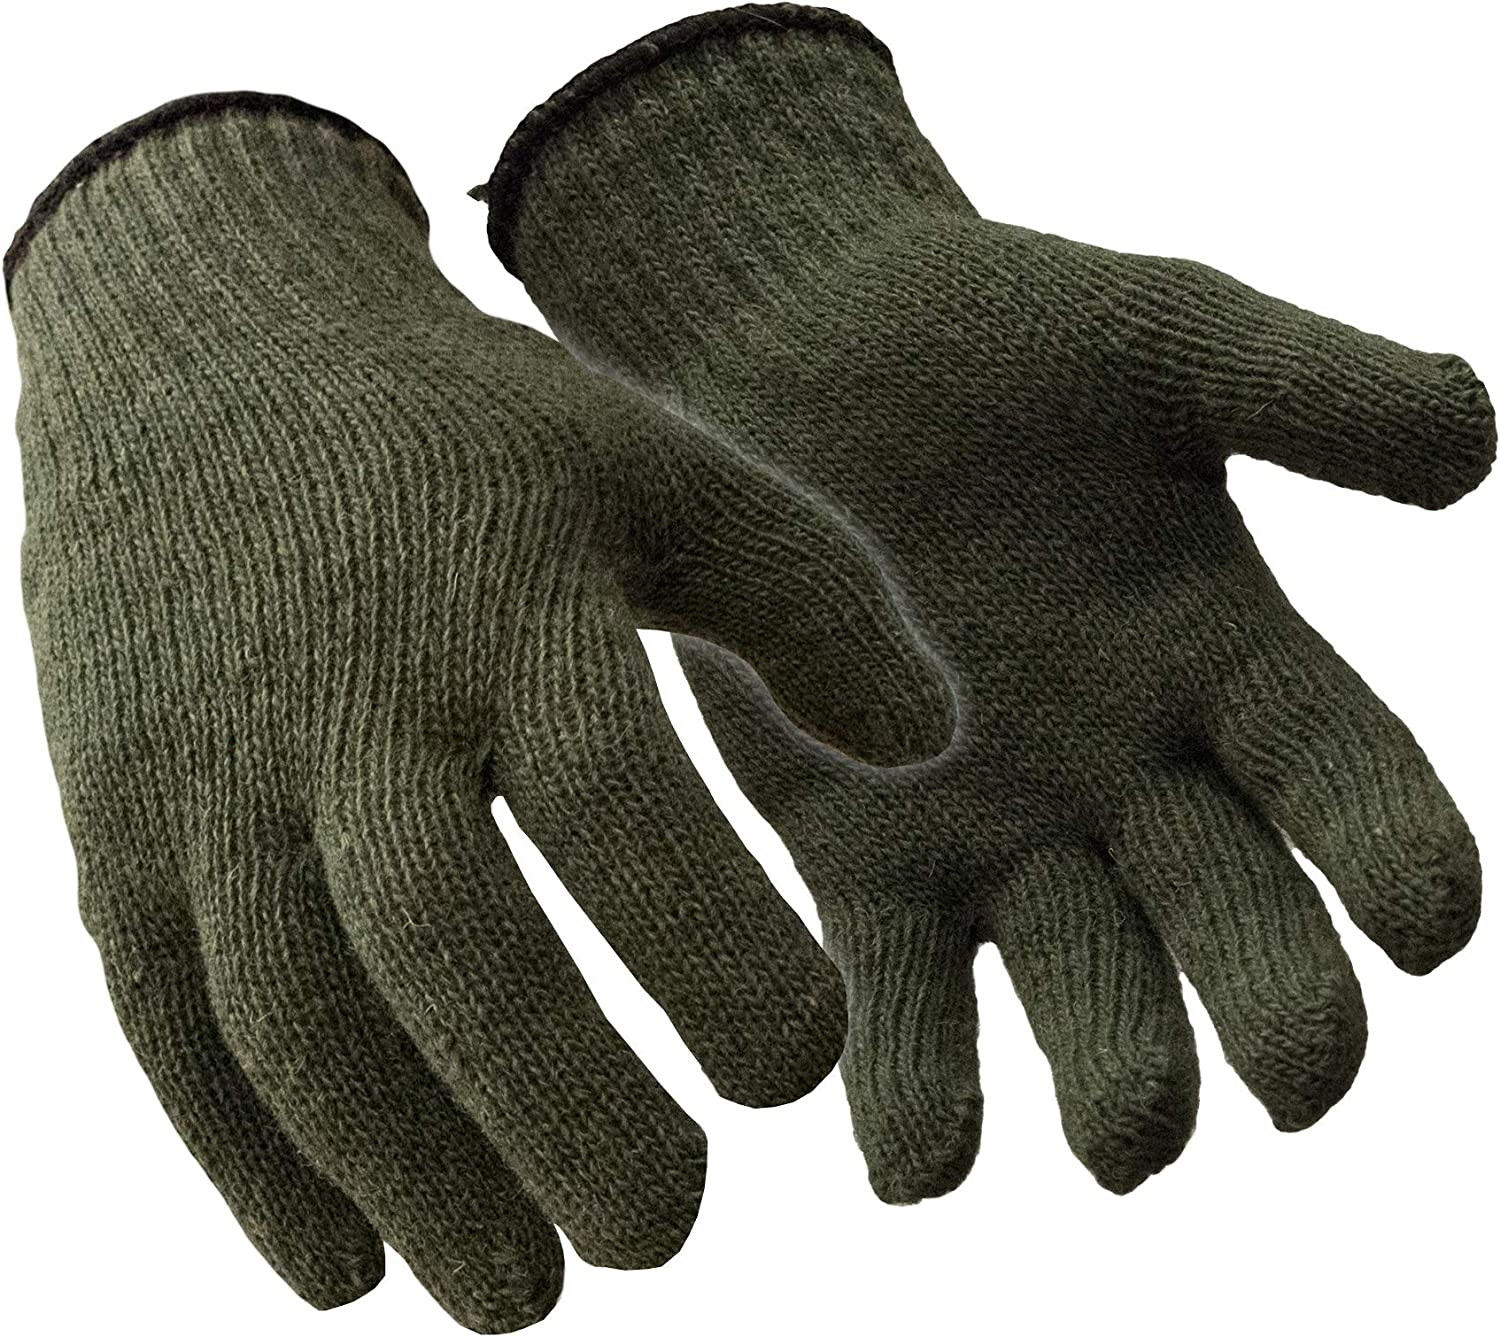 RefrigiWear Military Style Ragg Wool Glove Liners, Green - PACK OF 12 PAIRS